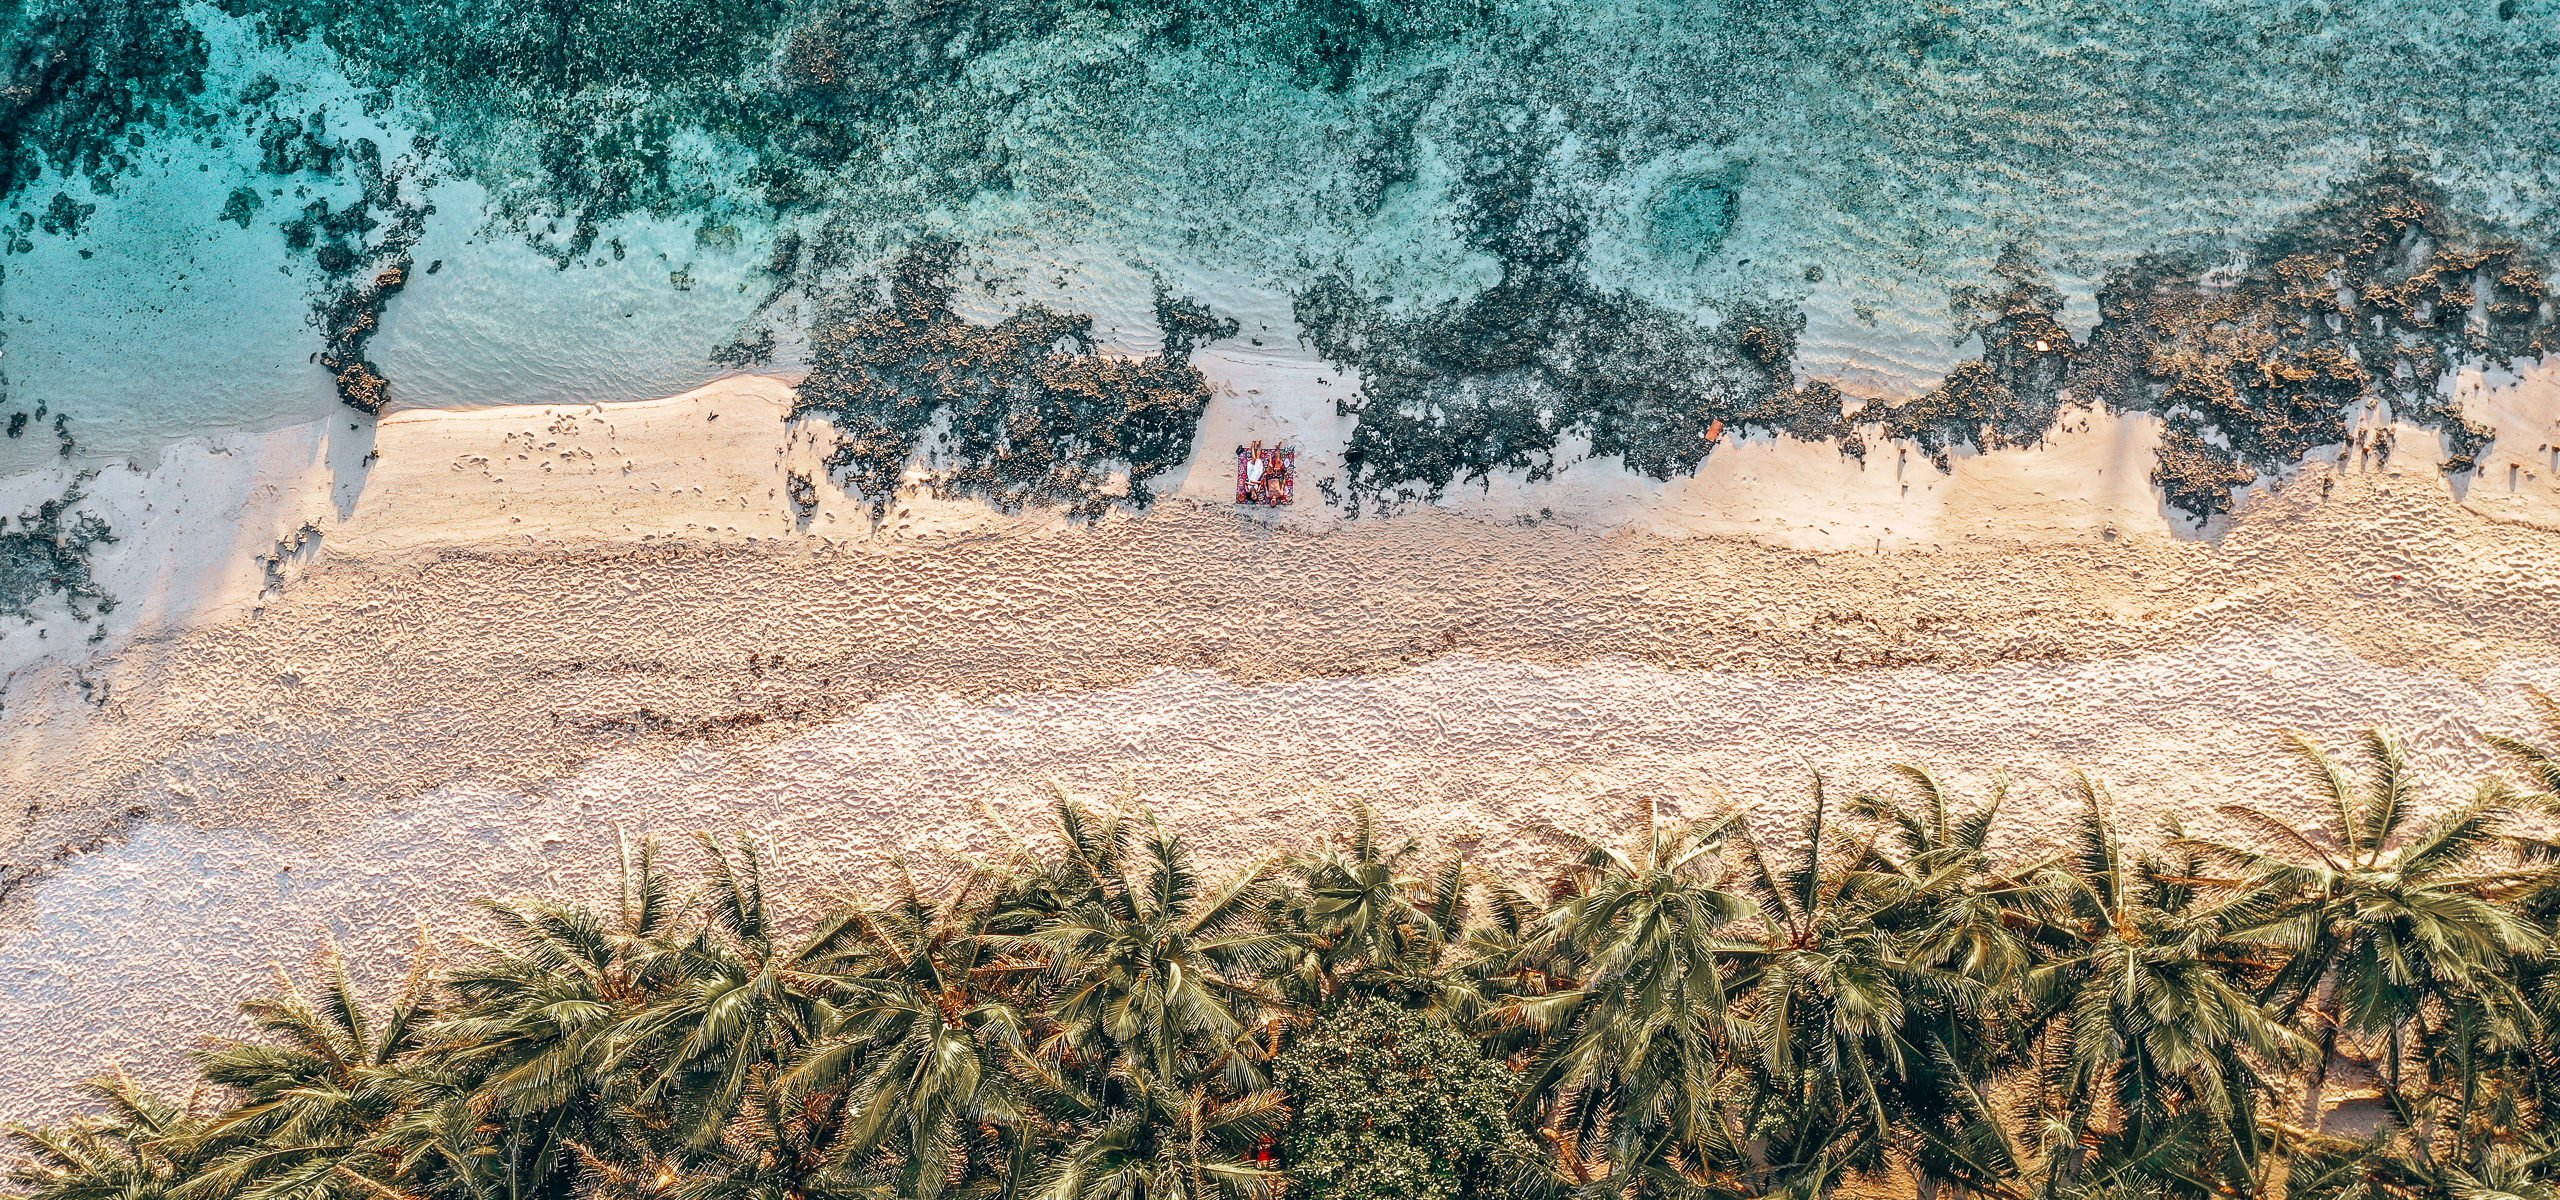 Ocean, sand and palm trees from above - Cloud 9, Siargao